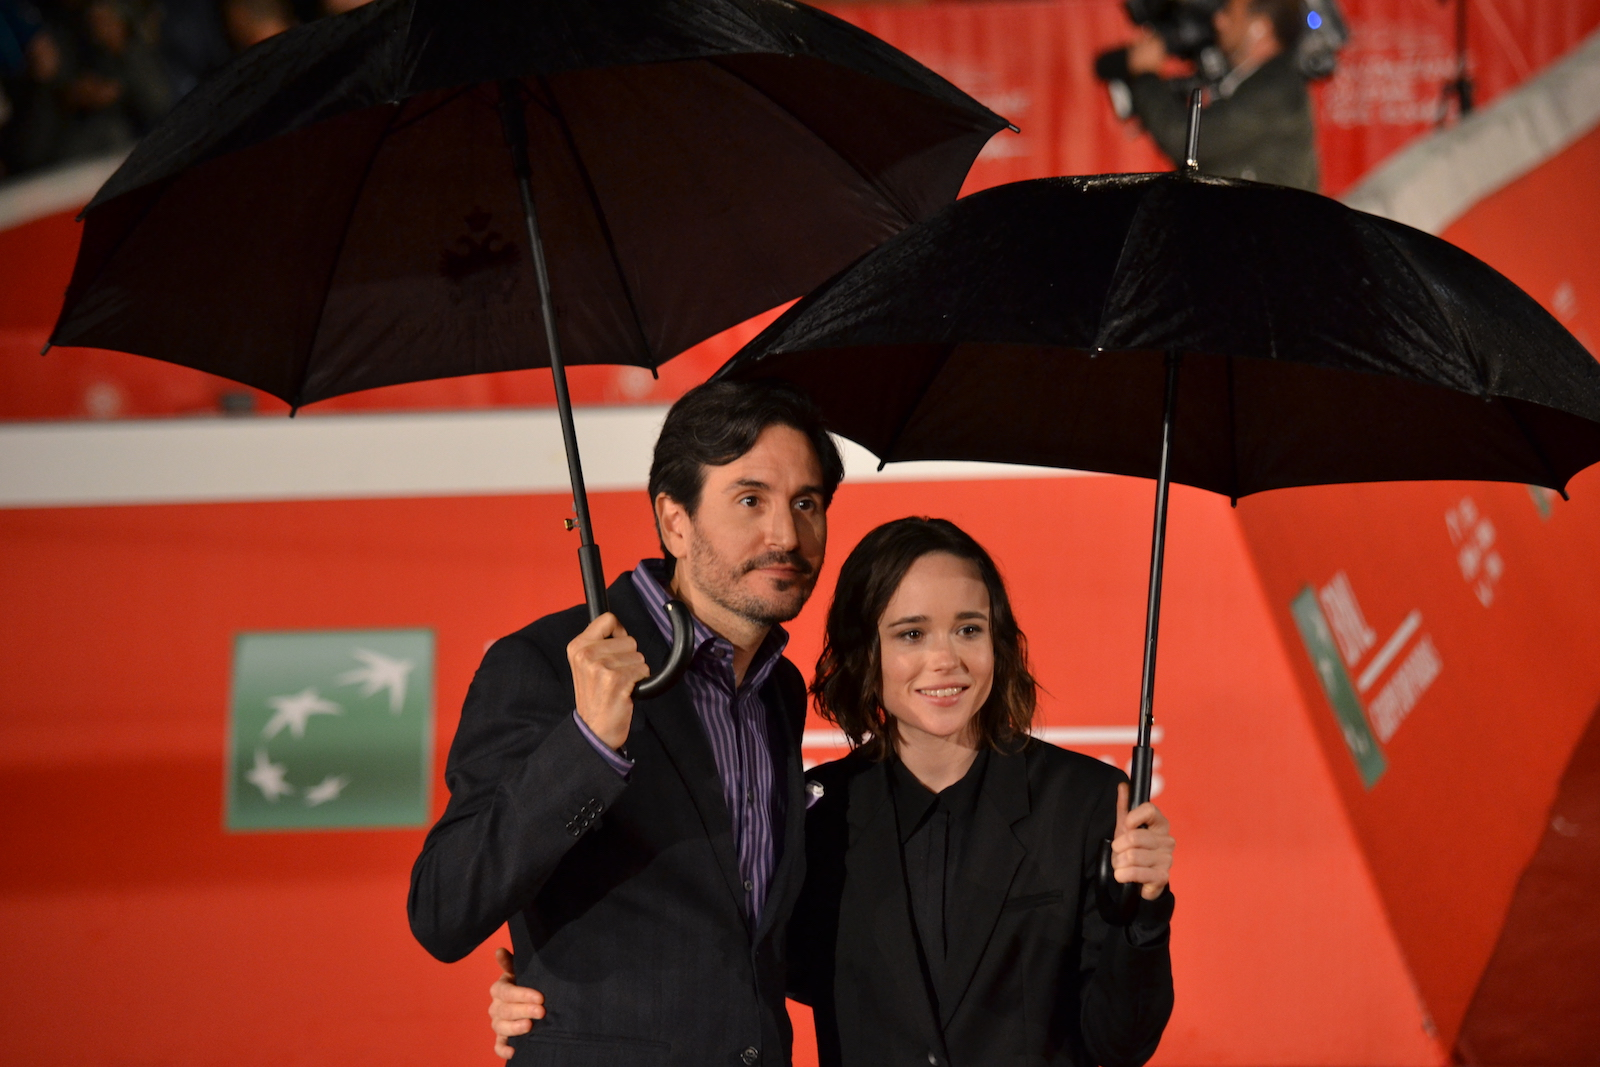 Roma 2015: Ellen Page e Peter Sollett sul red carpet di Freeheld